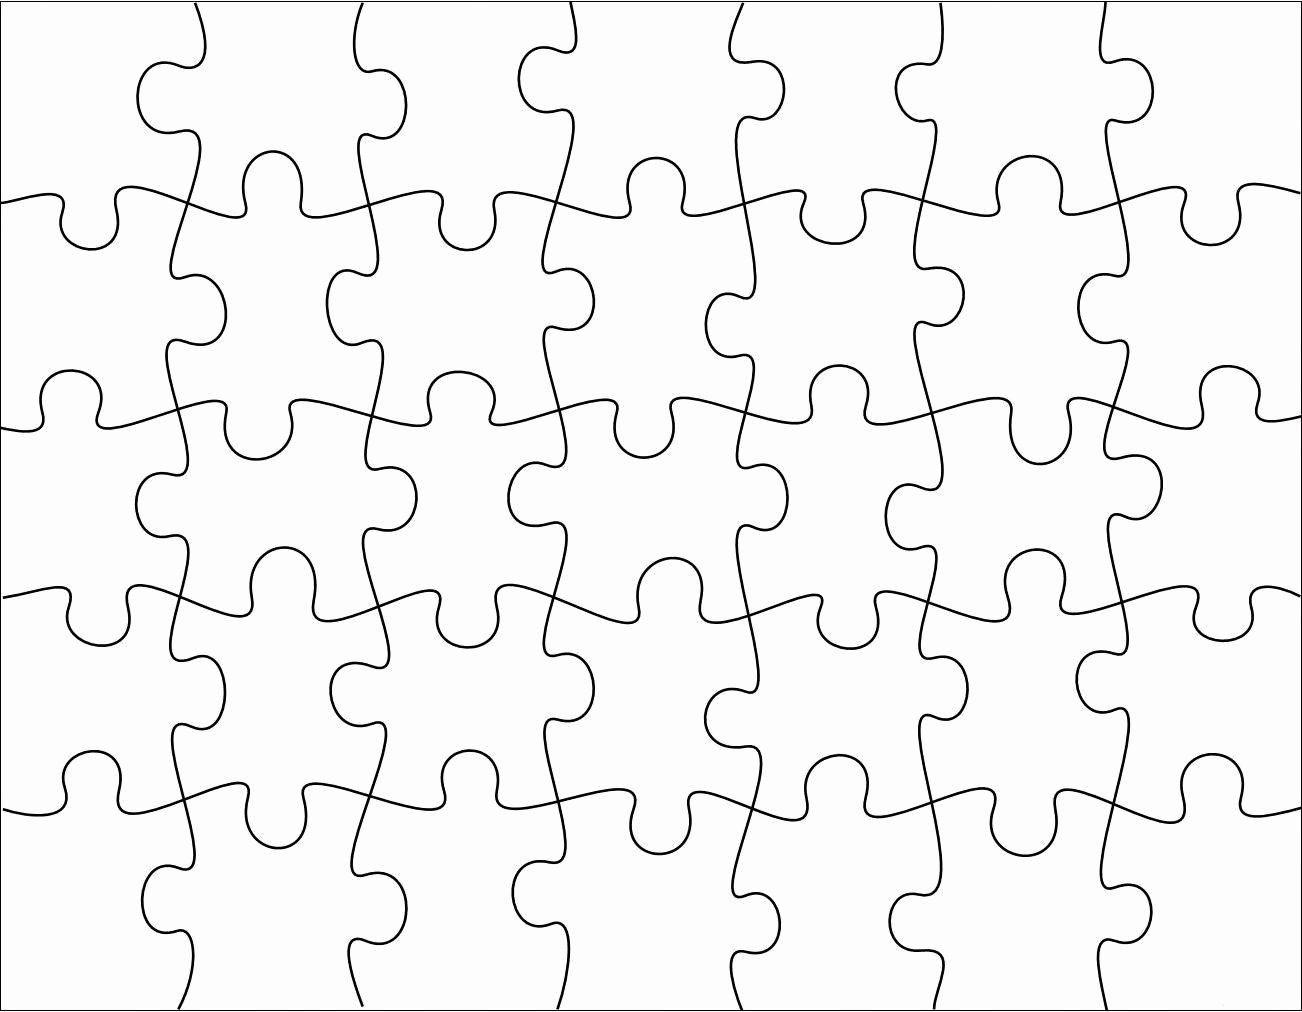 Blank Jigsaw Puzzle Template Unique Jigsaw Template Free Downloads G Tpearl